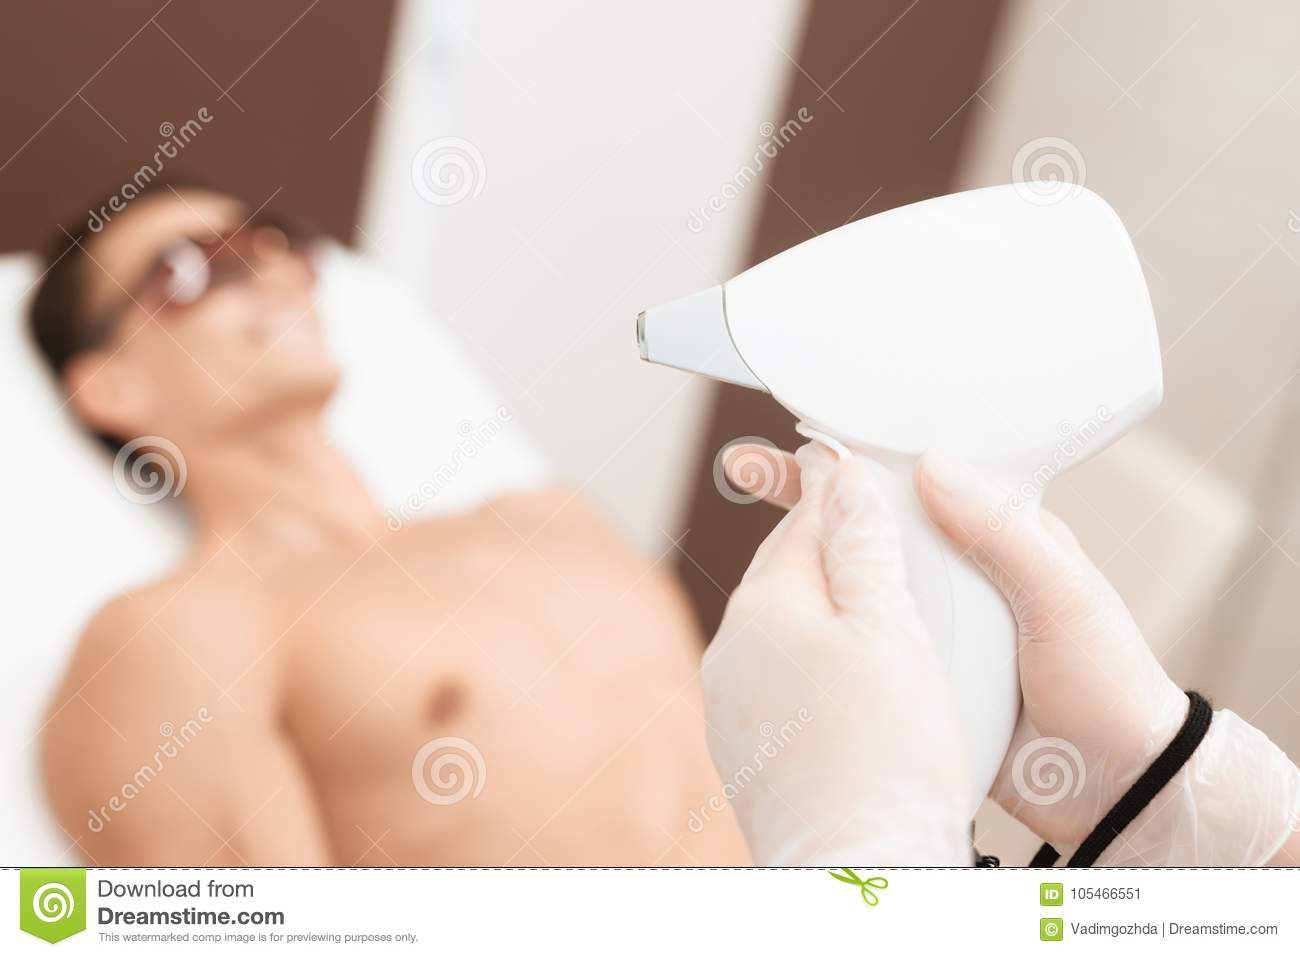 The Doctor Is Preparing A Laser Hair Removal Machine Against The